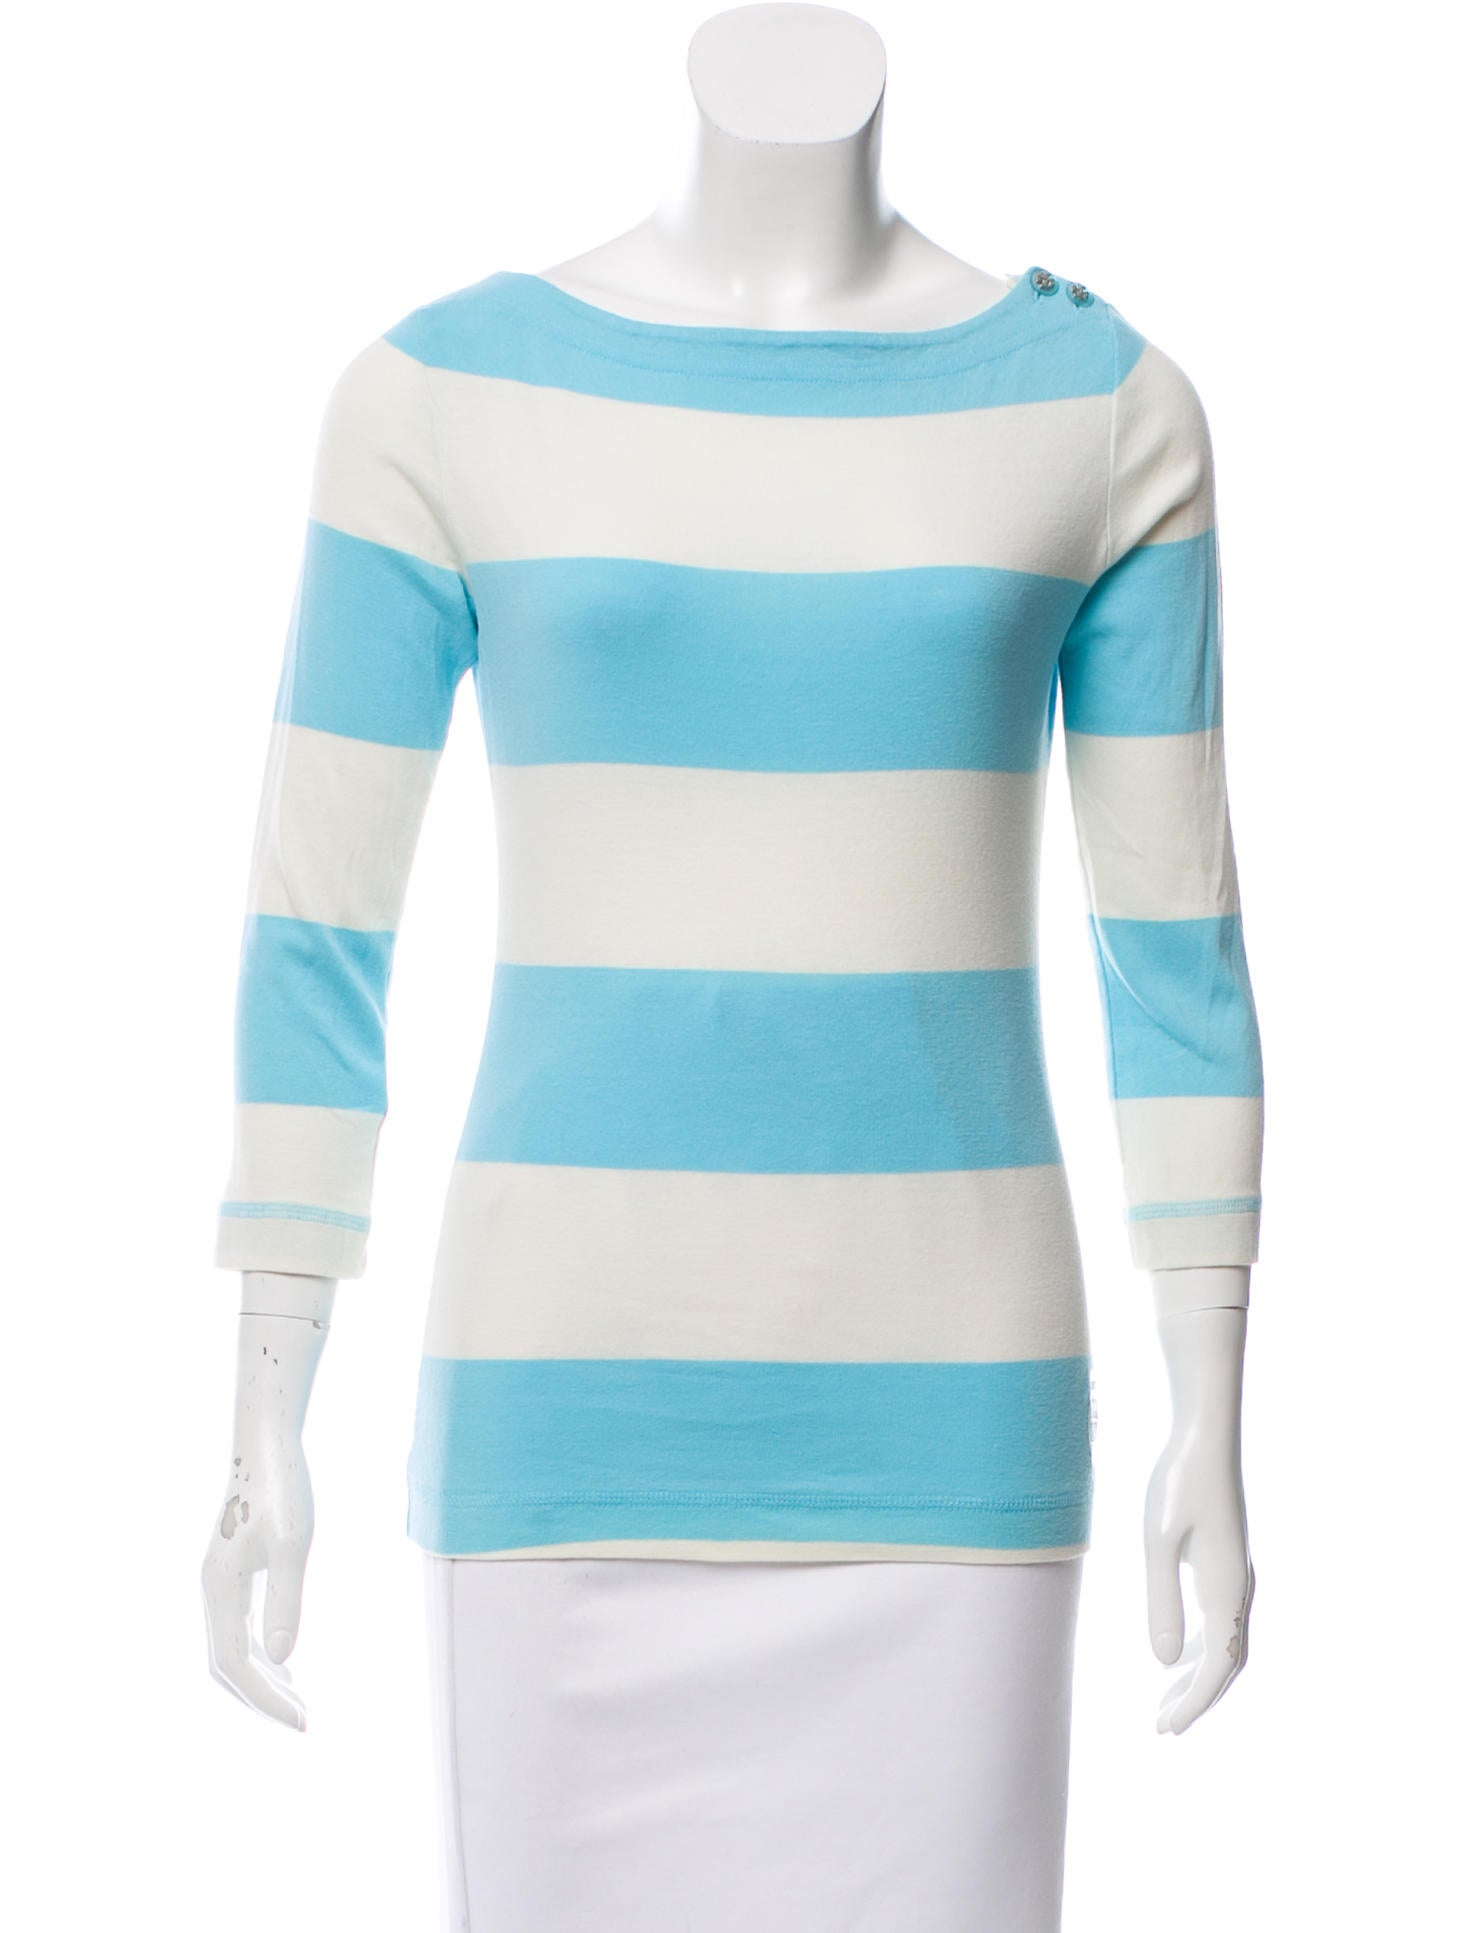 Clearance Store Sale Online Tory Burch Striped Bateau Neck Top Free Shipping 100% Authentic KaaKy